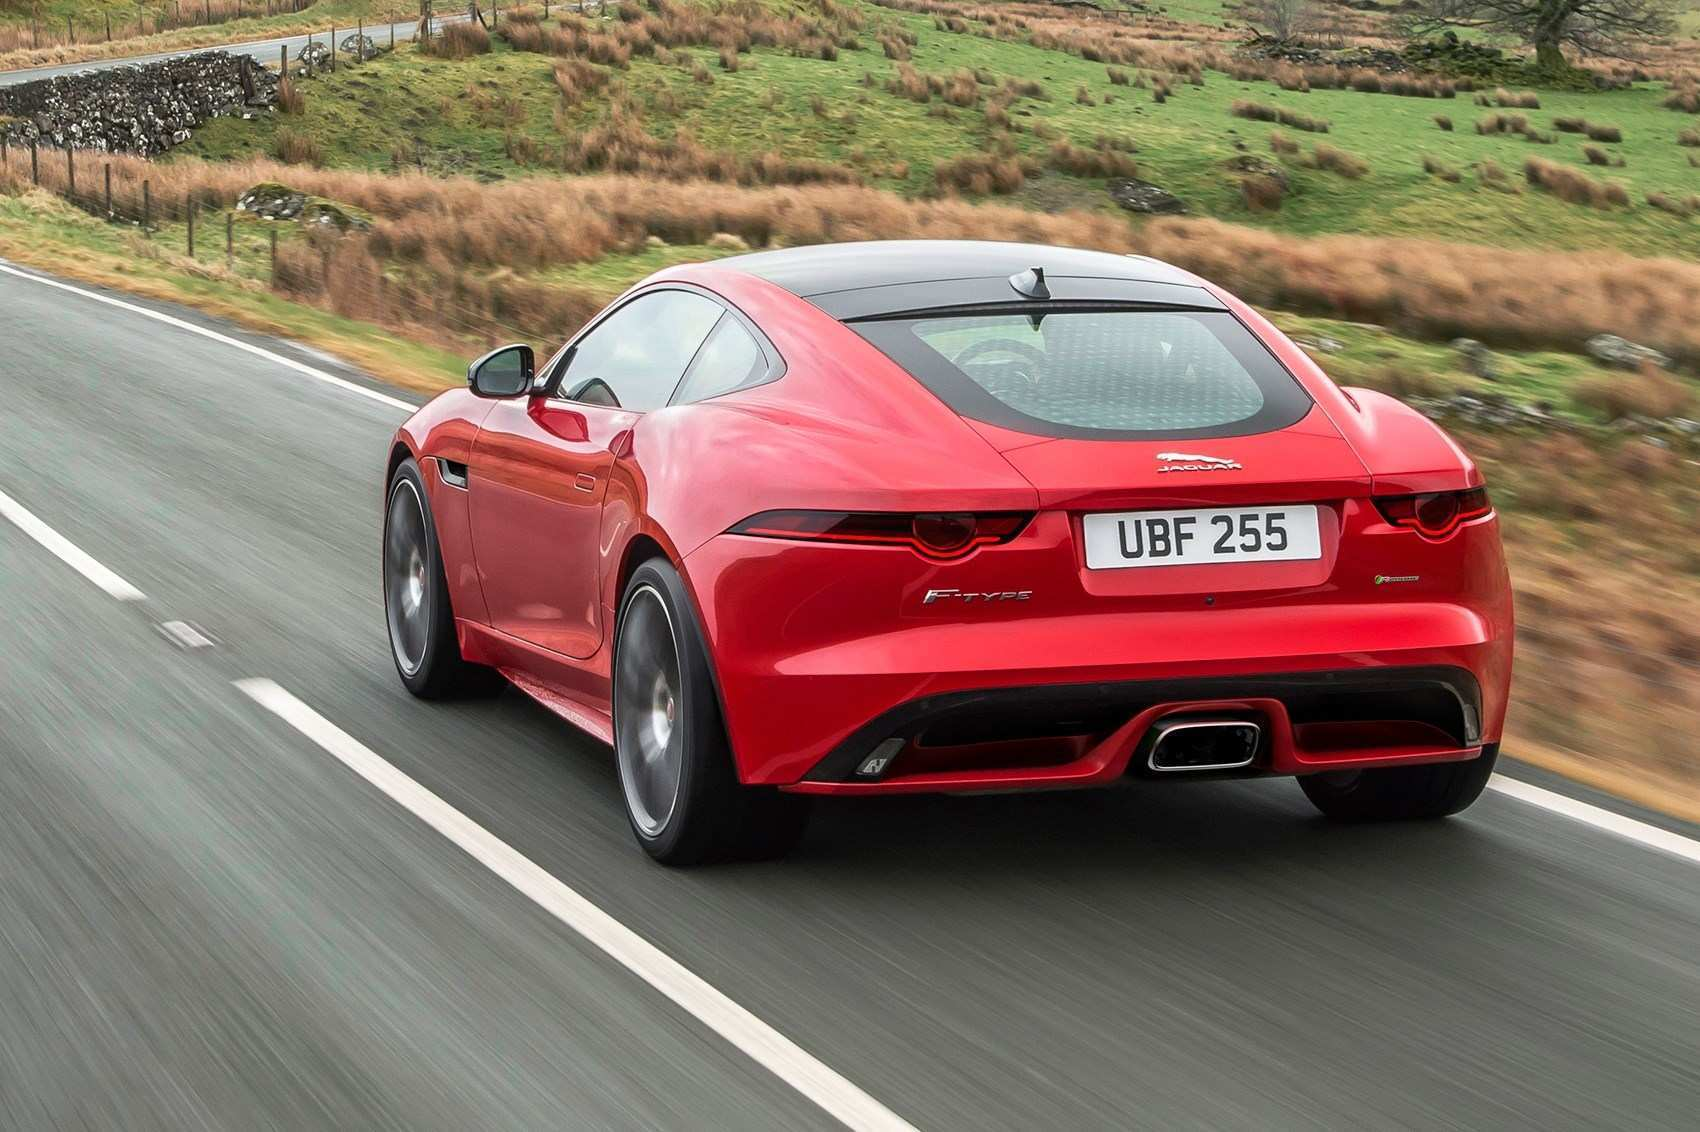 95 Concept of 2020 Jaguar F Type Convertible New Review by 2020 Jaguar F Type Convertible